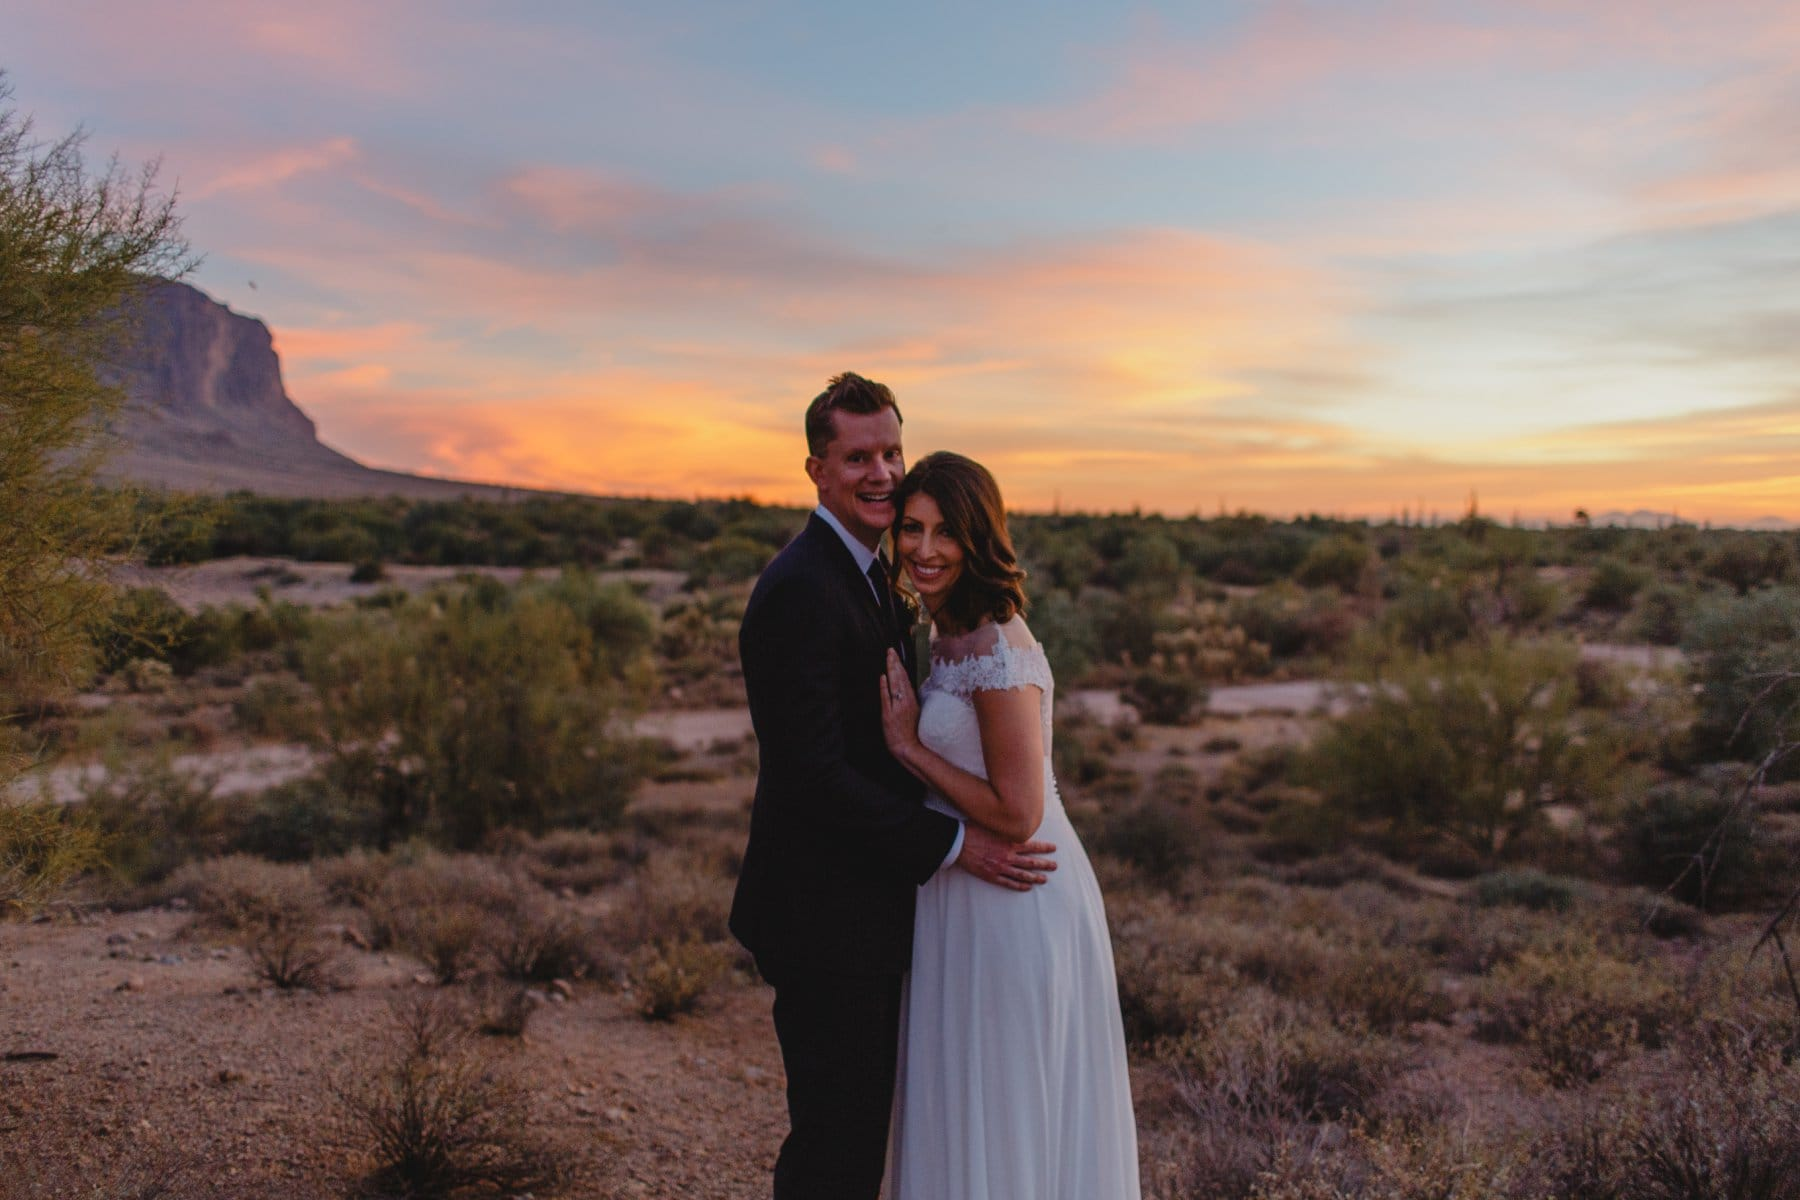 colorful sunset Arizona elopement photos at Superstition Mountains